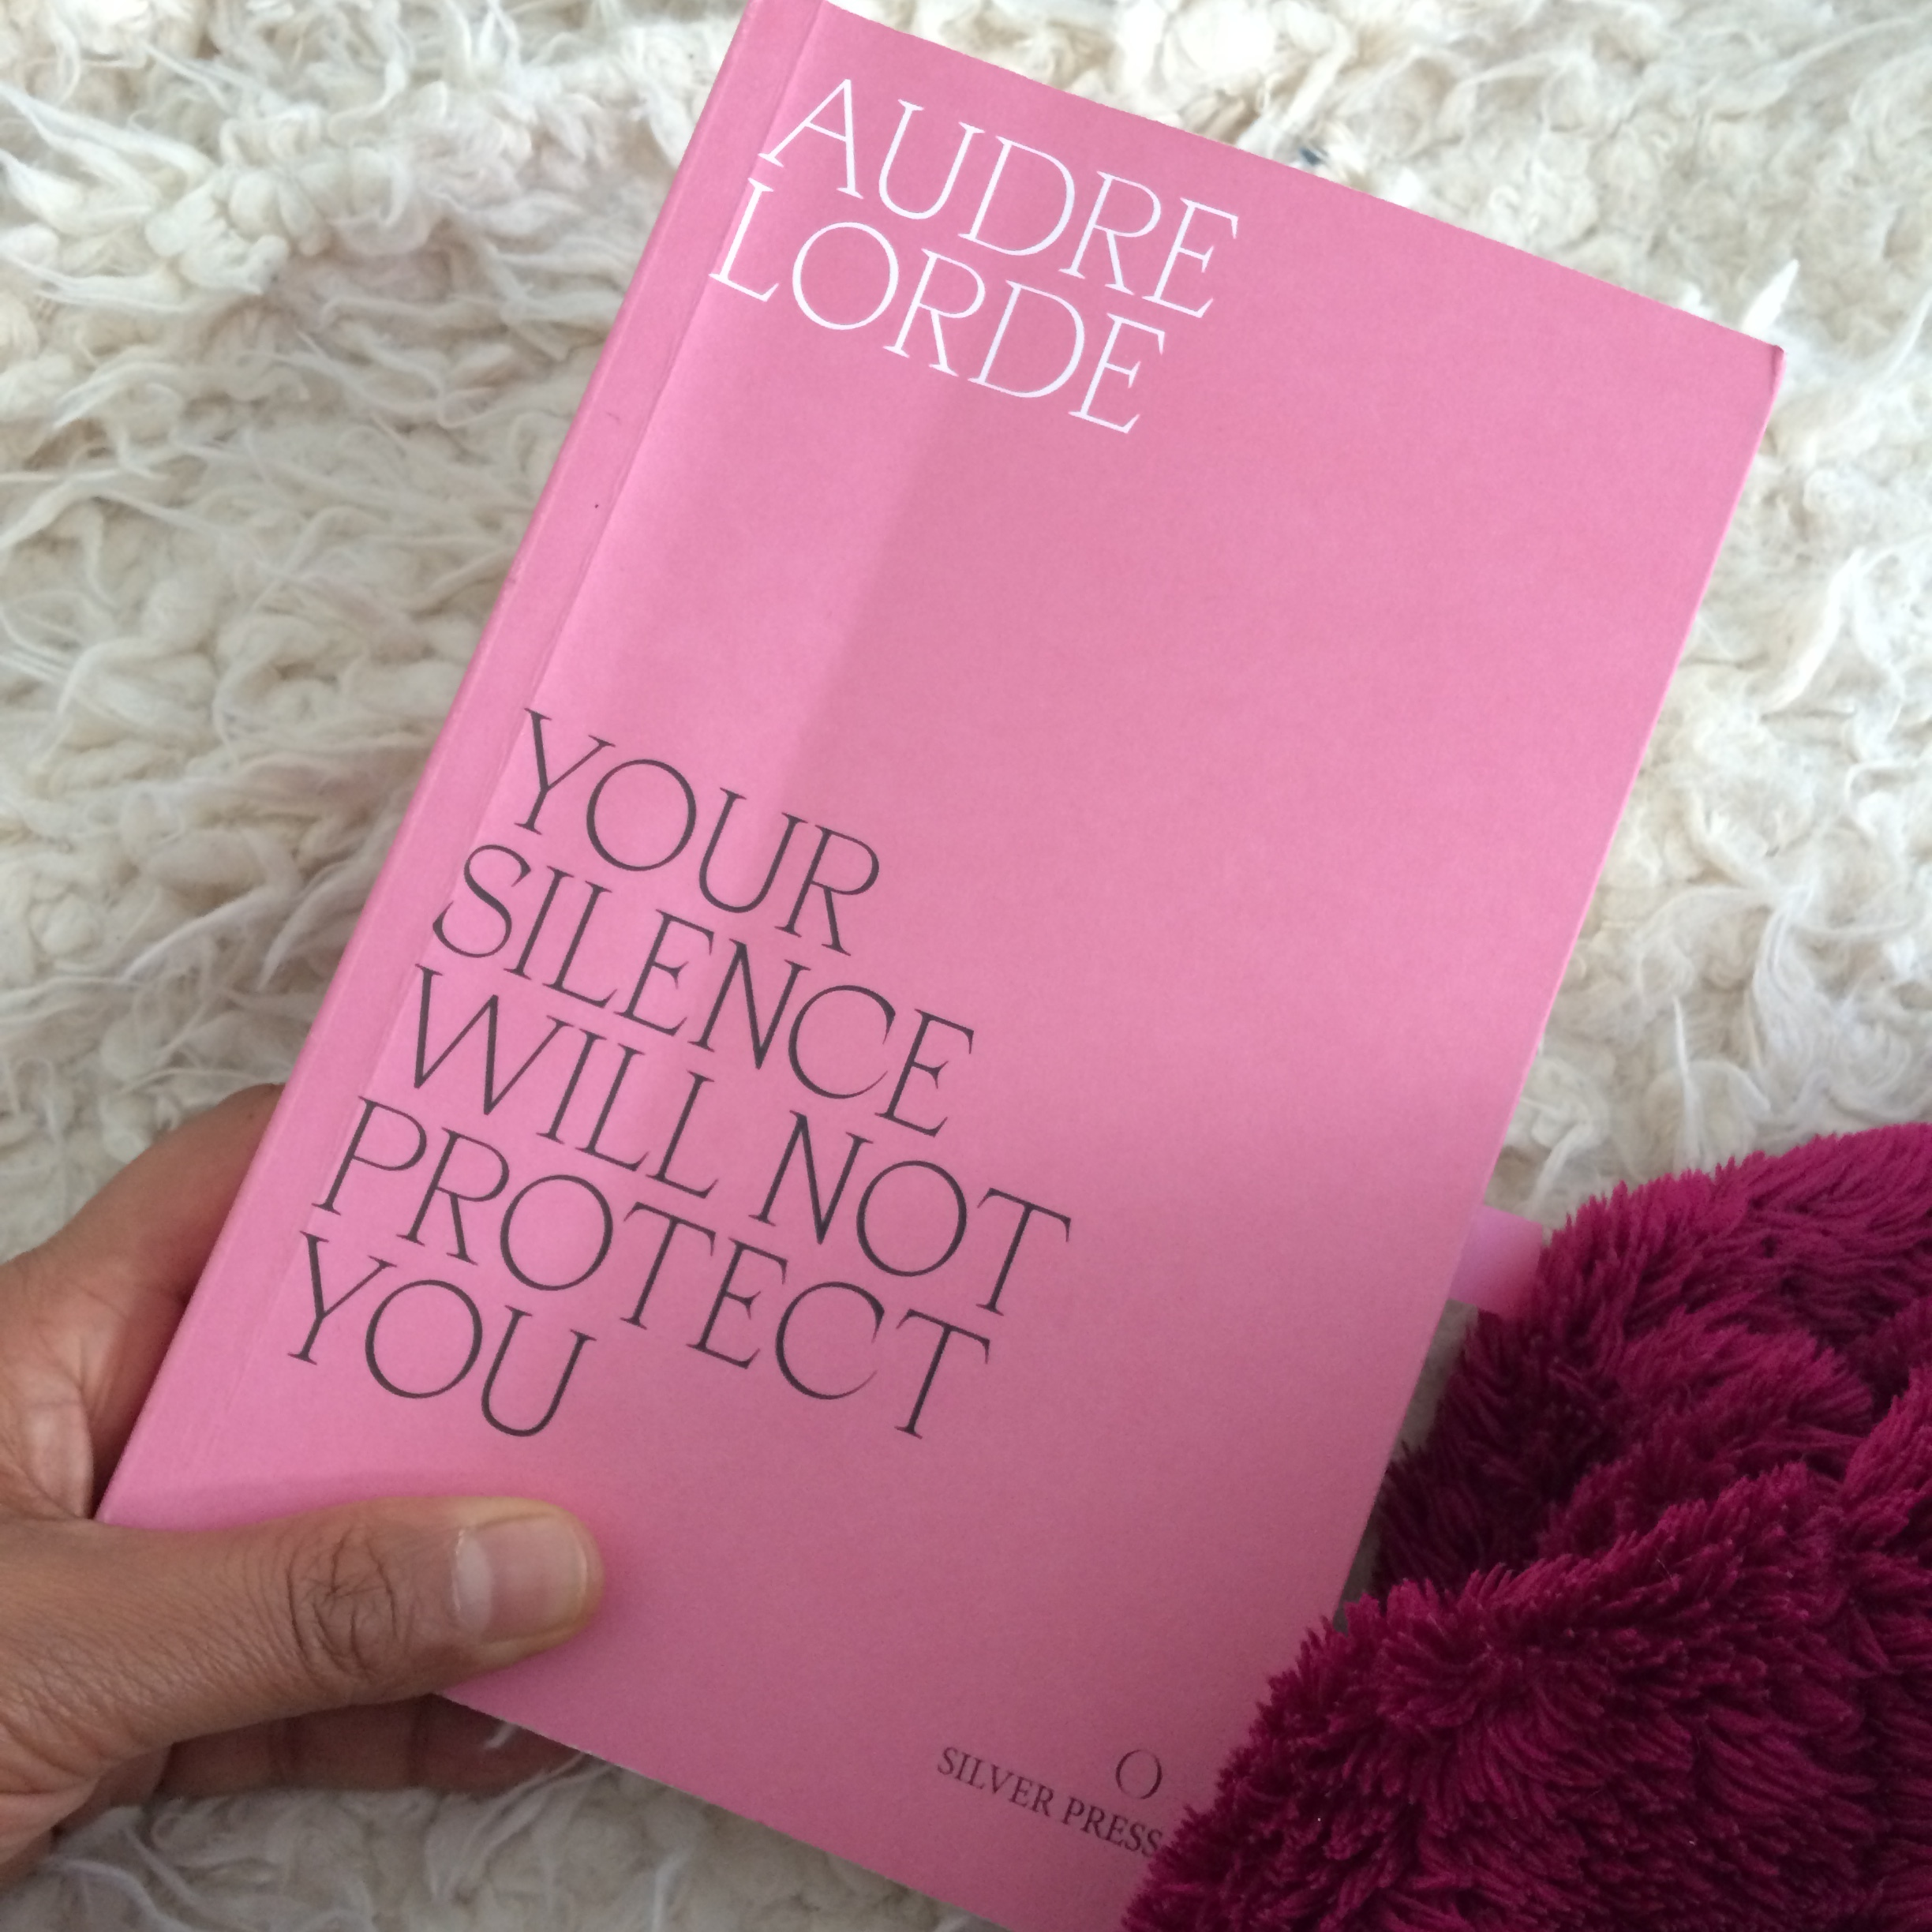 Audre Lorde: Your Silence Will Not Protect You.JPG